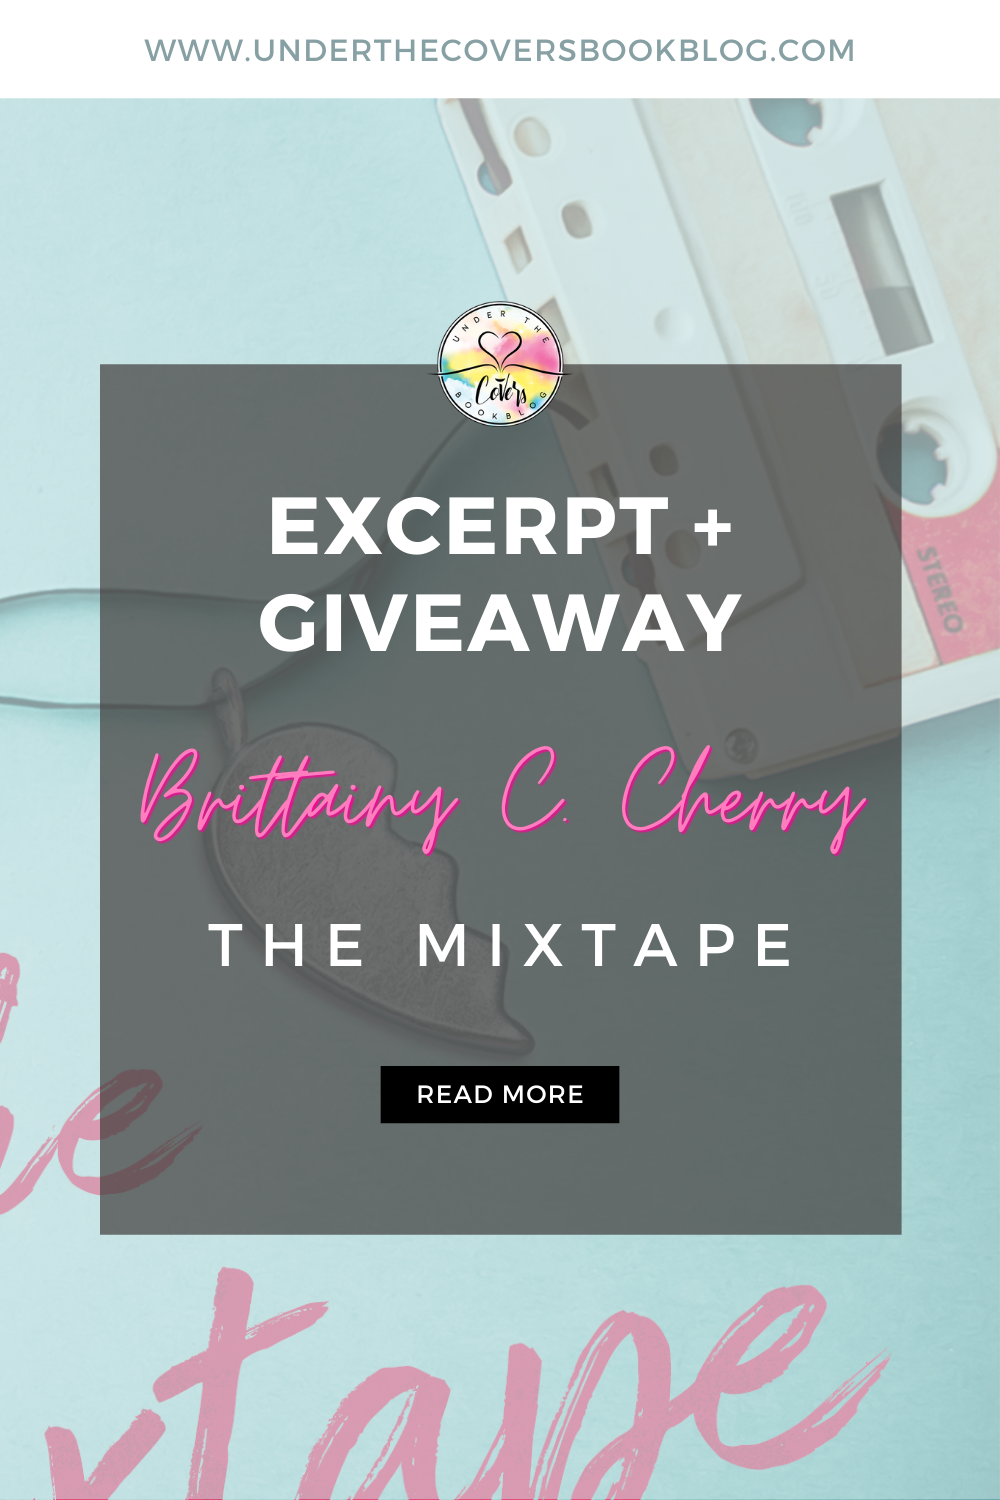 Excerpt from THE MIXTAPE by Brittainy C. Cherry + Giveaway